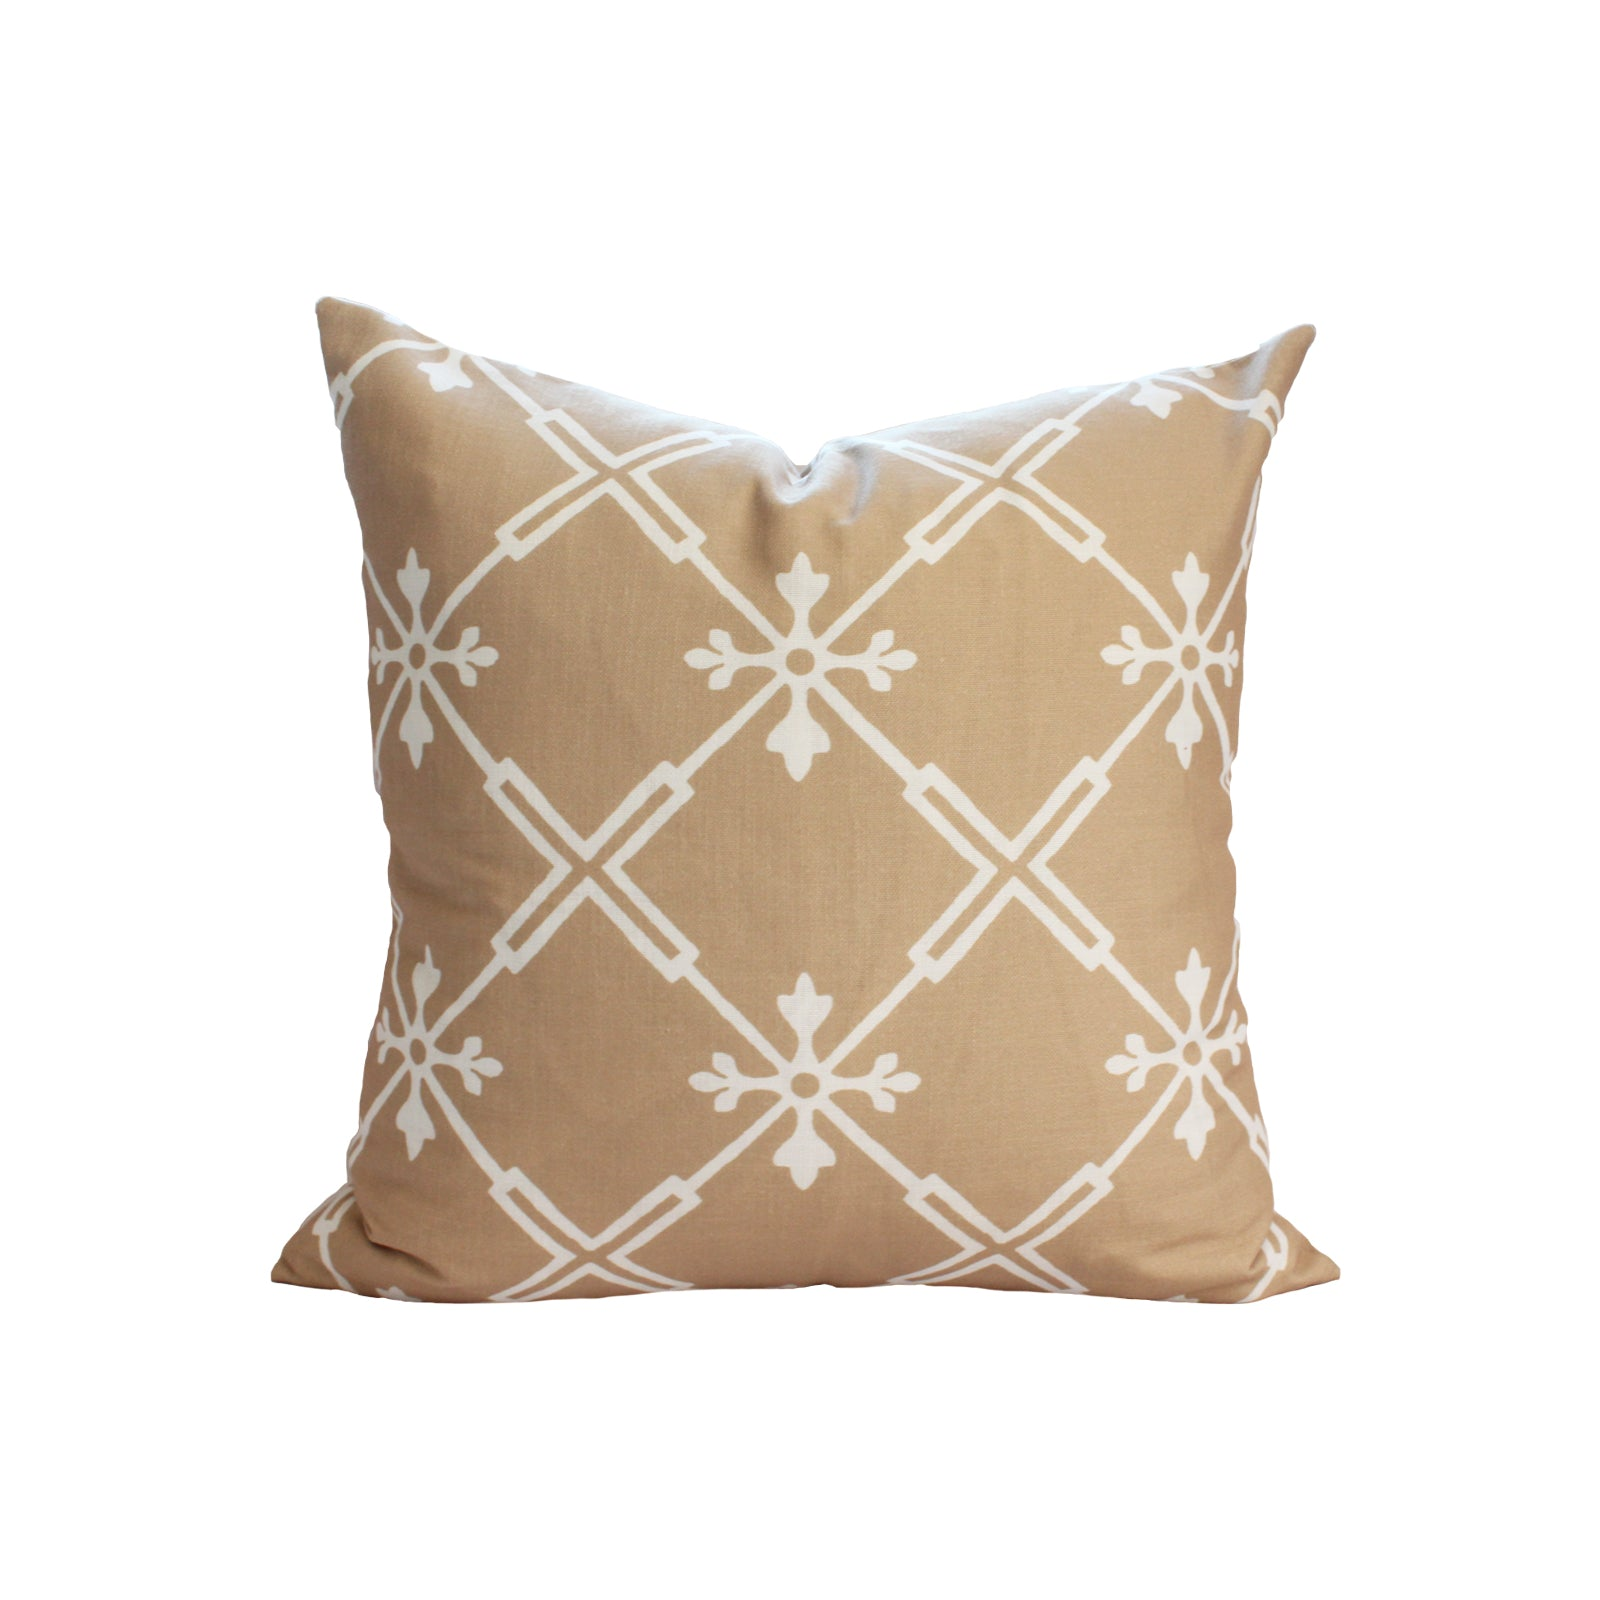 Audrey Pillow in Camel